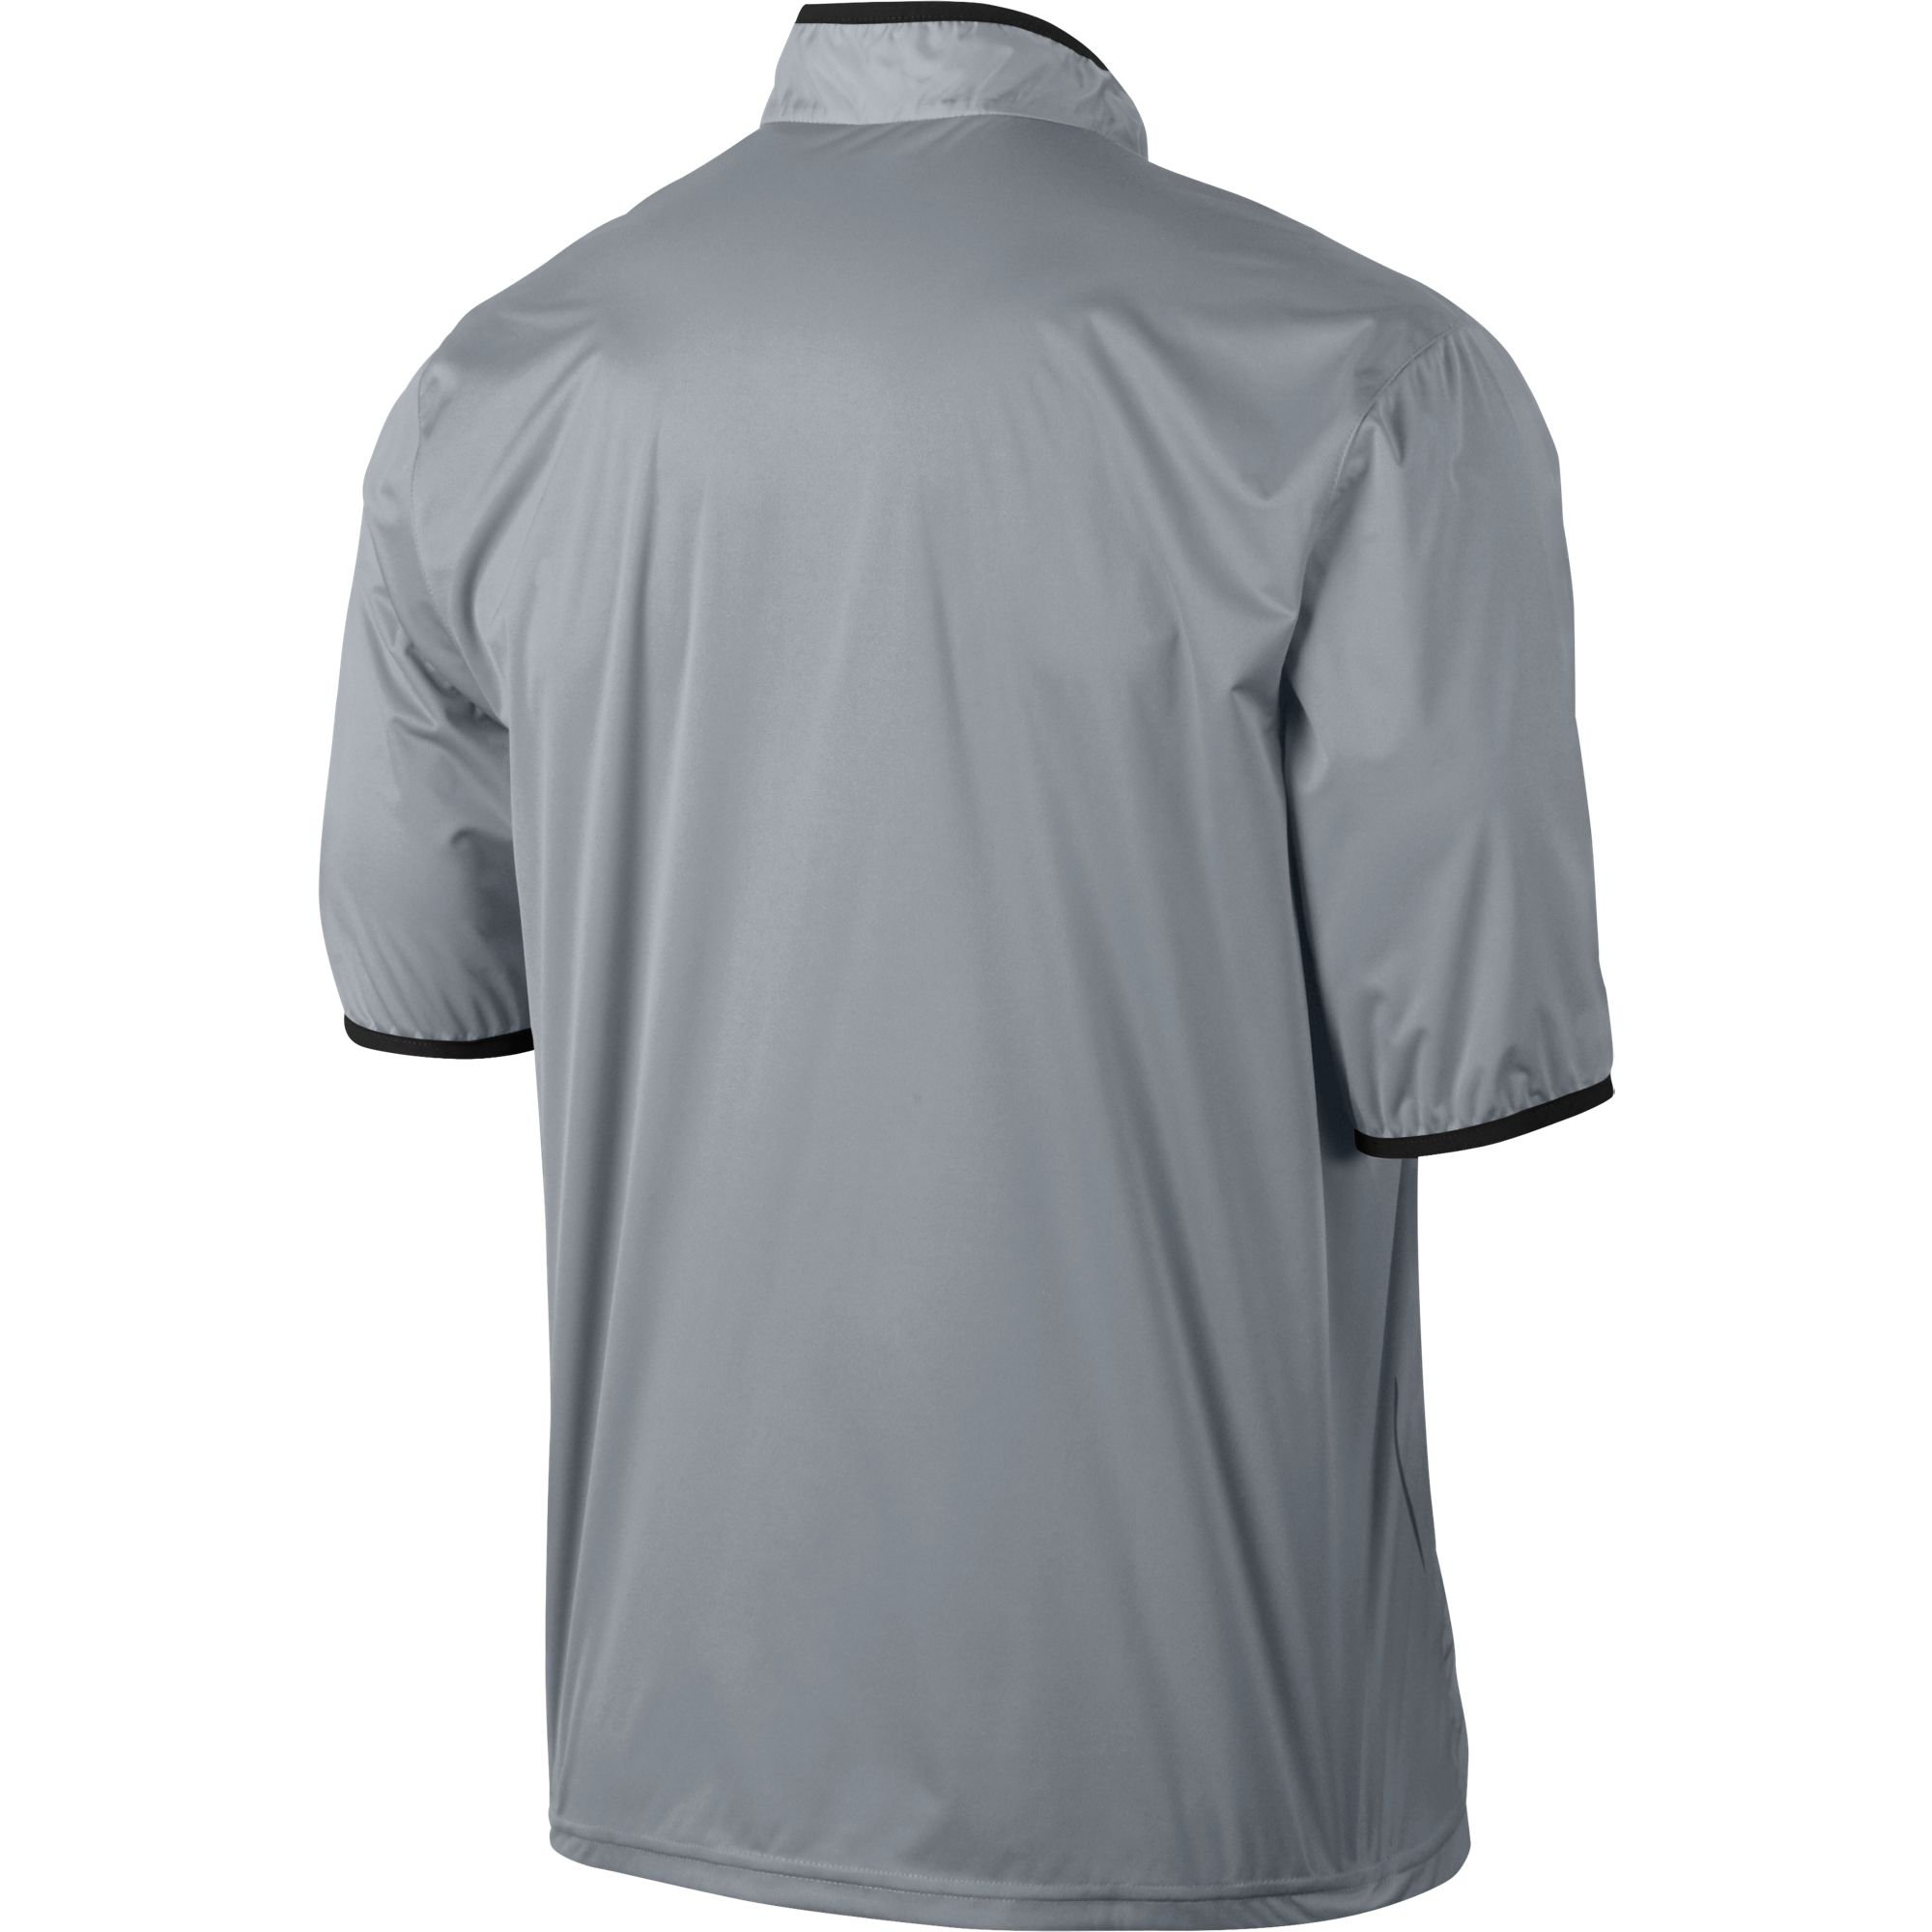 NIKE CLOSEOUT Shield Men's Short Sleeve Golf Jacket (Wolf Grey, Medium) by NIKE